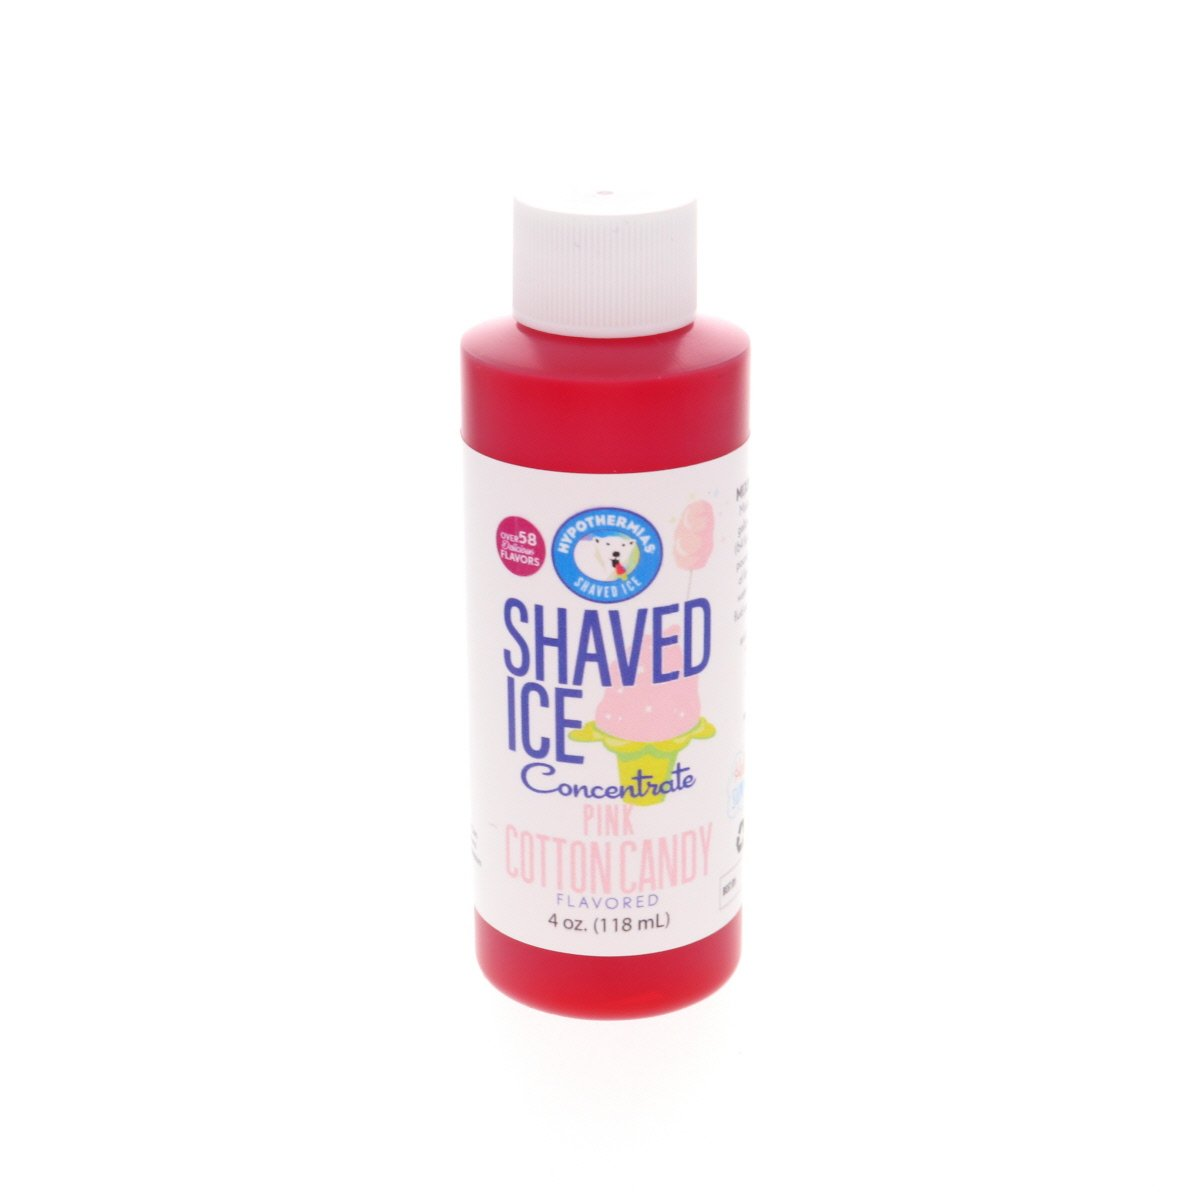 Pink cotton candy syrup flavor concentrate for shave ice 4 Fl Oz